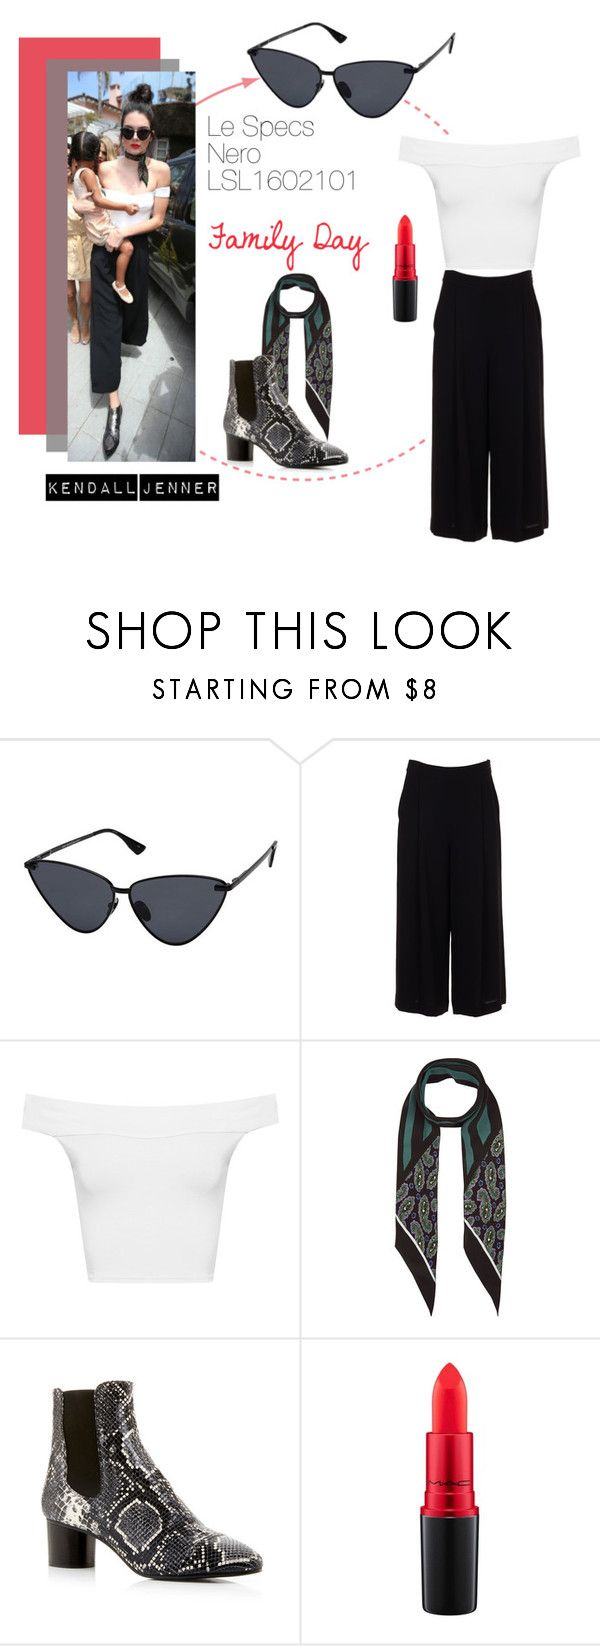 """Kendall Jenner: Family Day"" by visiondirect ❤ liked on Polyvore featuring Le Specs, Diane Von Furstenberg, WearAll, Rockins, Isabel Marant, MAC Cosmetics, FamilyDay, sunnies, kendalljenner and cateyesunglasses"